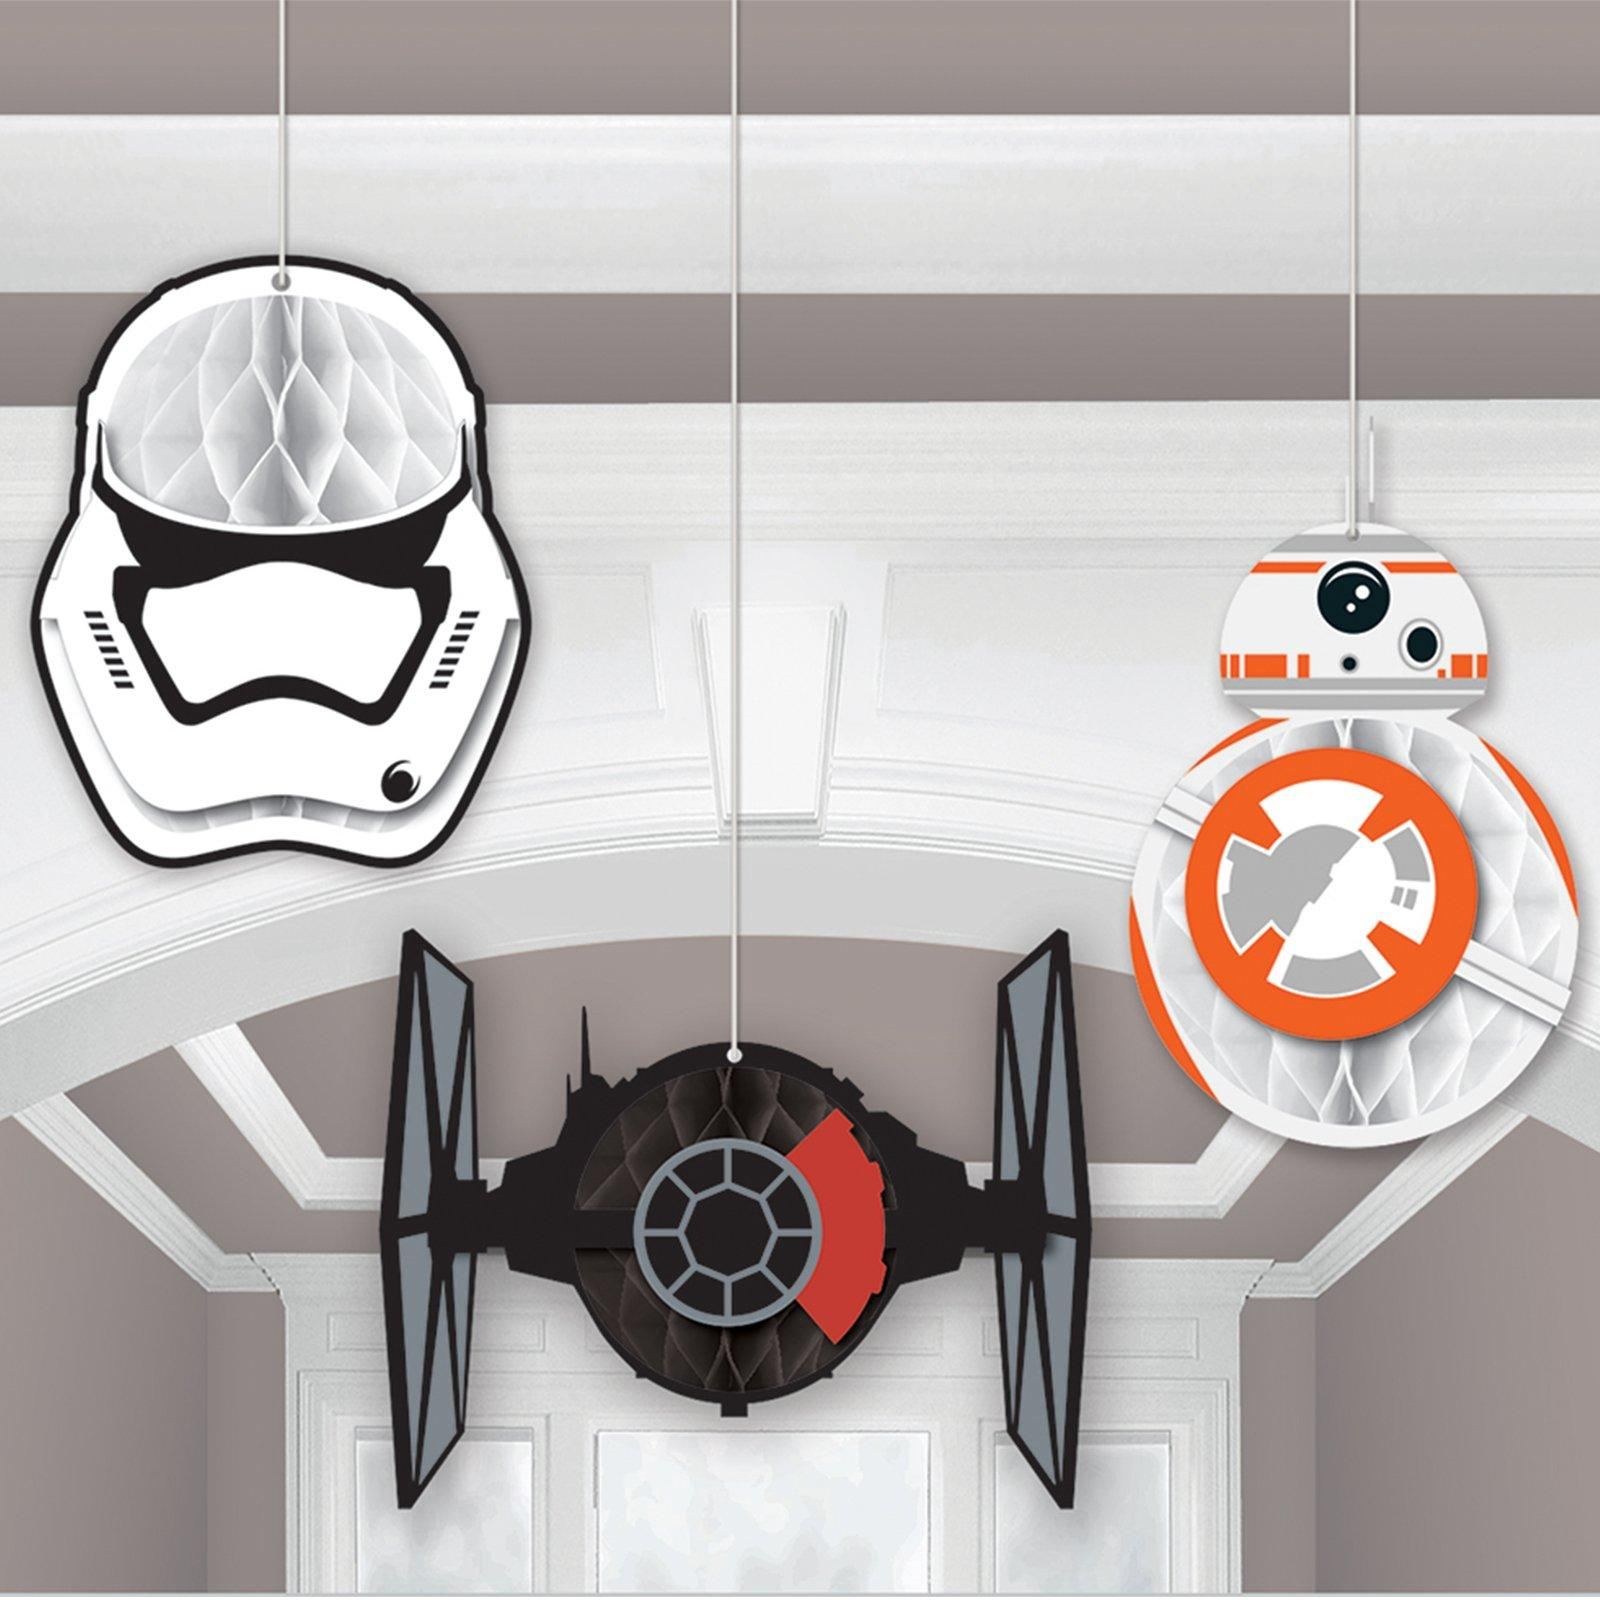 Star Wars Episode Vii The Force Awakens Honeycomb Decoration